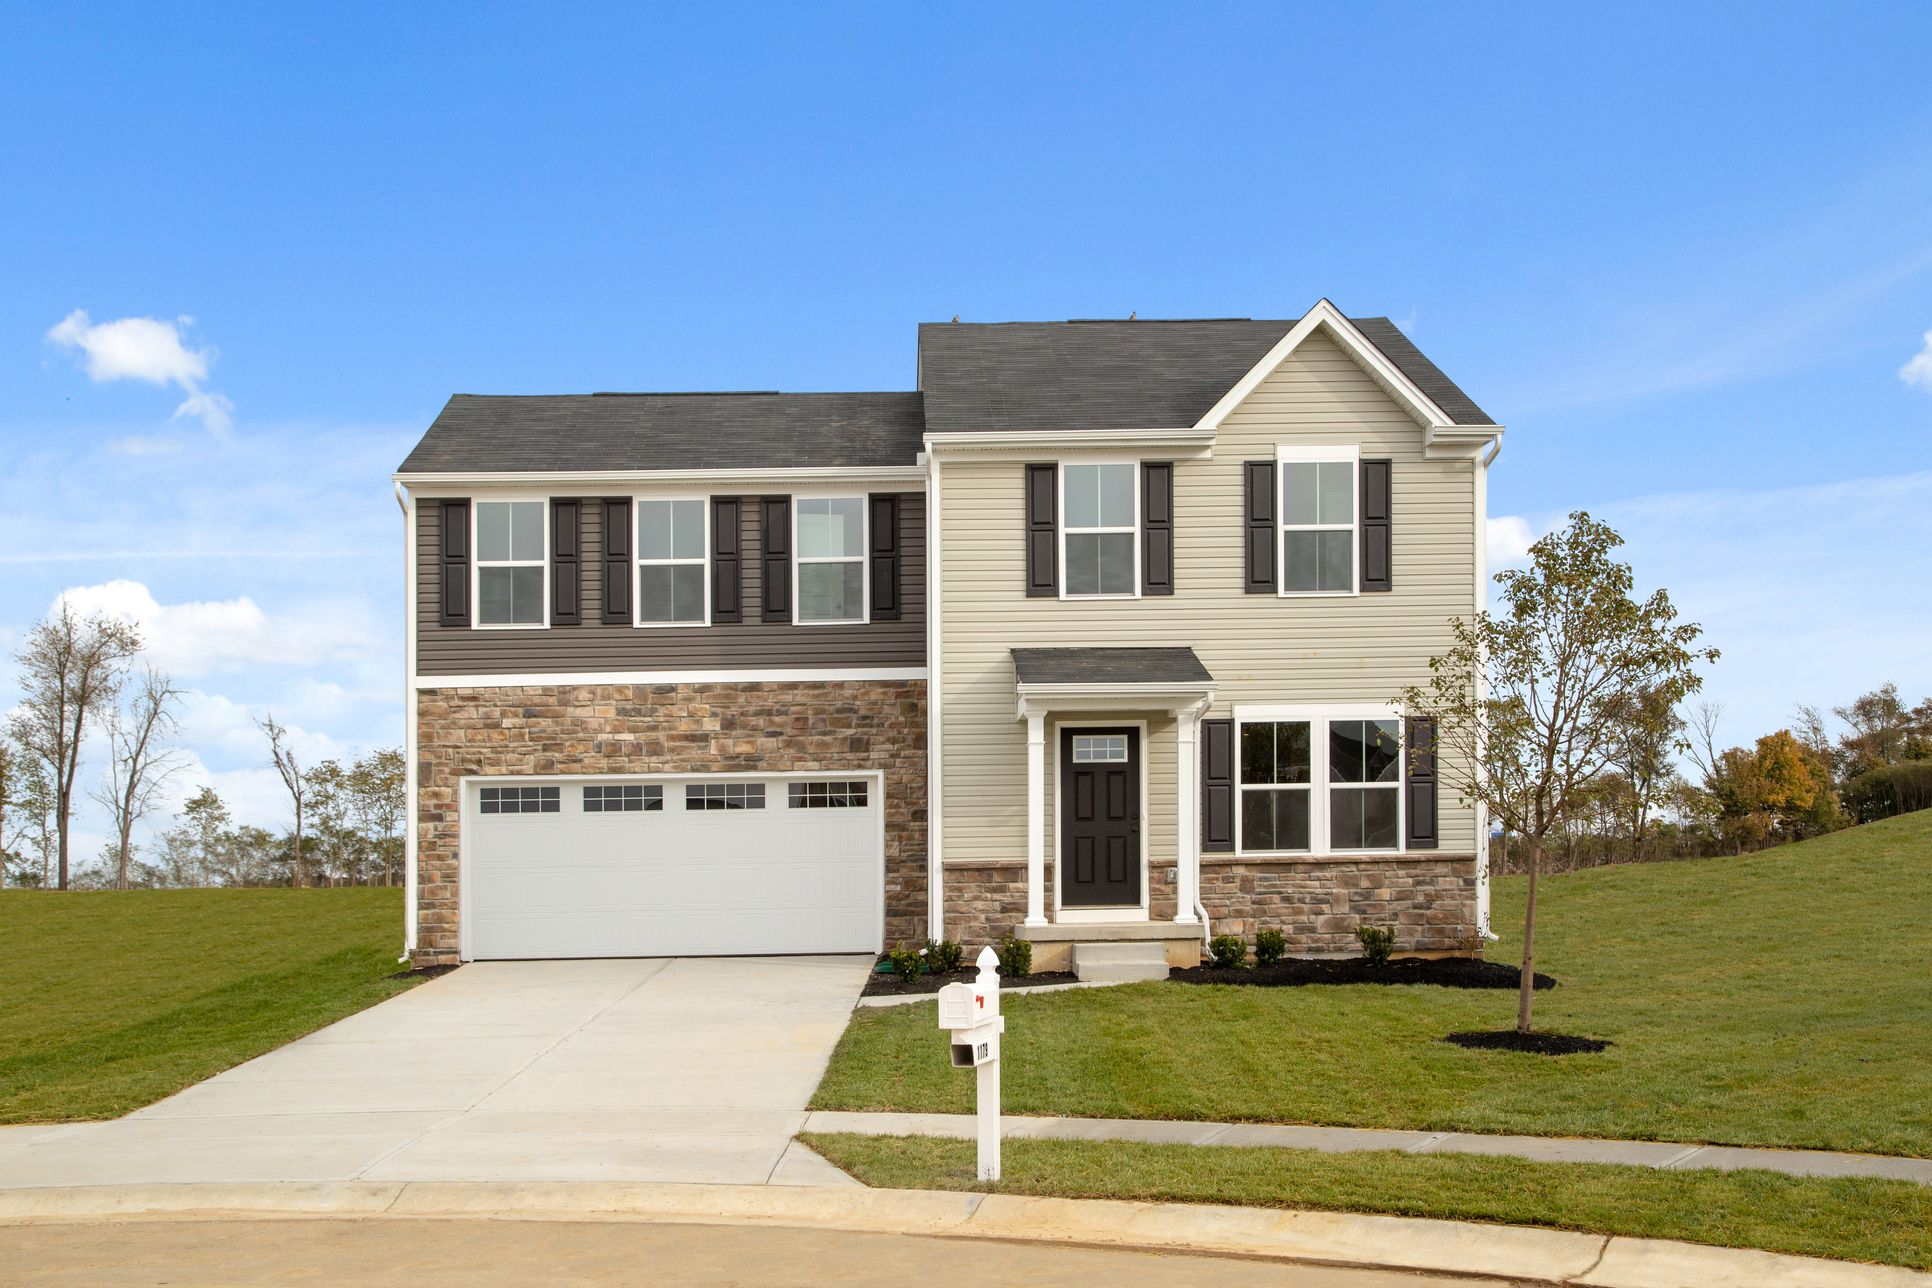 Welcome Home to Sawyers Mill:Most affordable new homes w/ 4+ bedrooms and 2.5 baths in Franklin Schools! An easy commute to I-75 from $190s.Click here to schedule your visit!